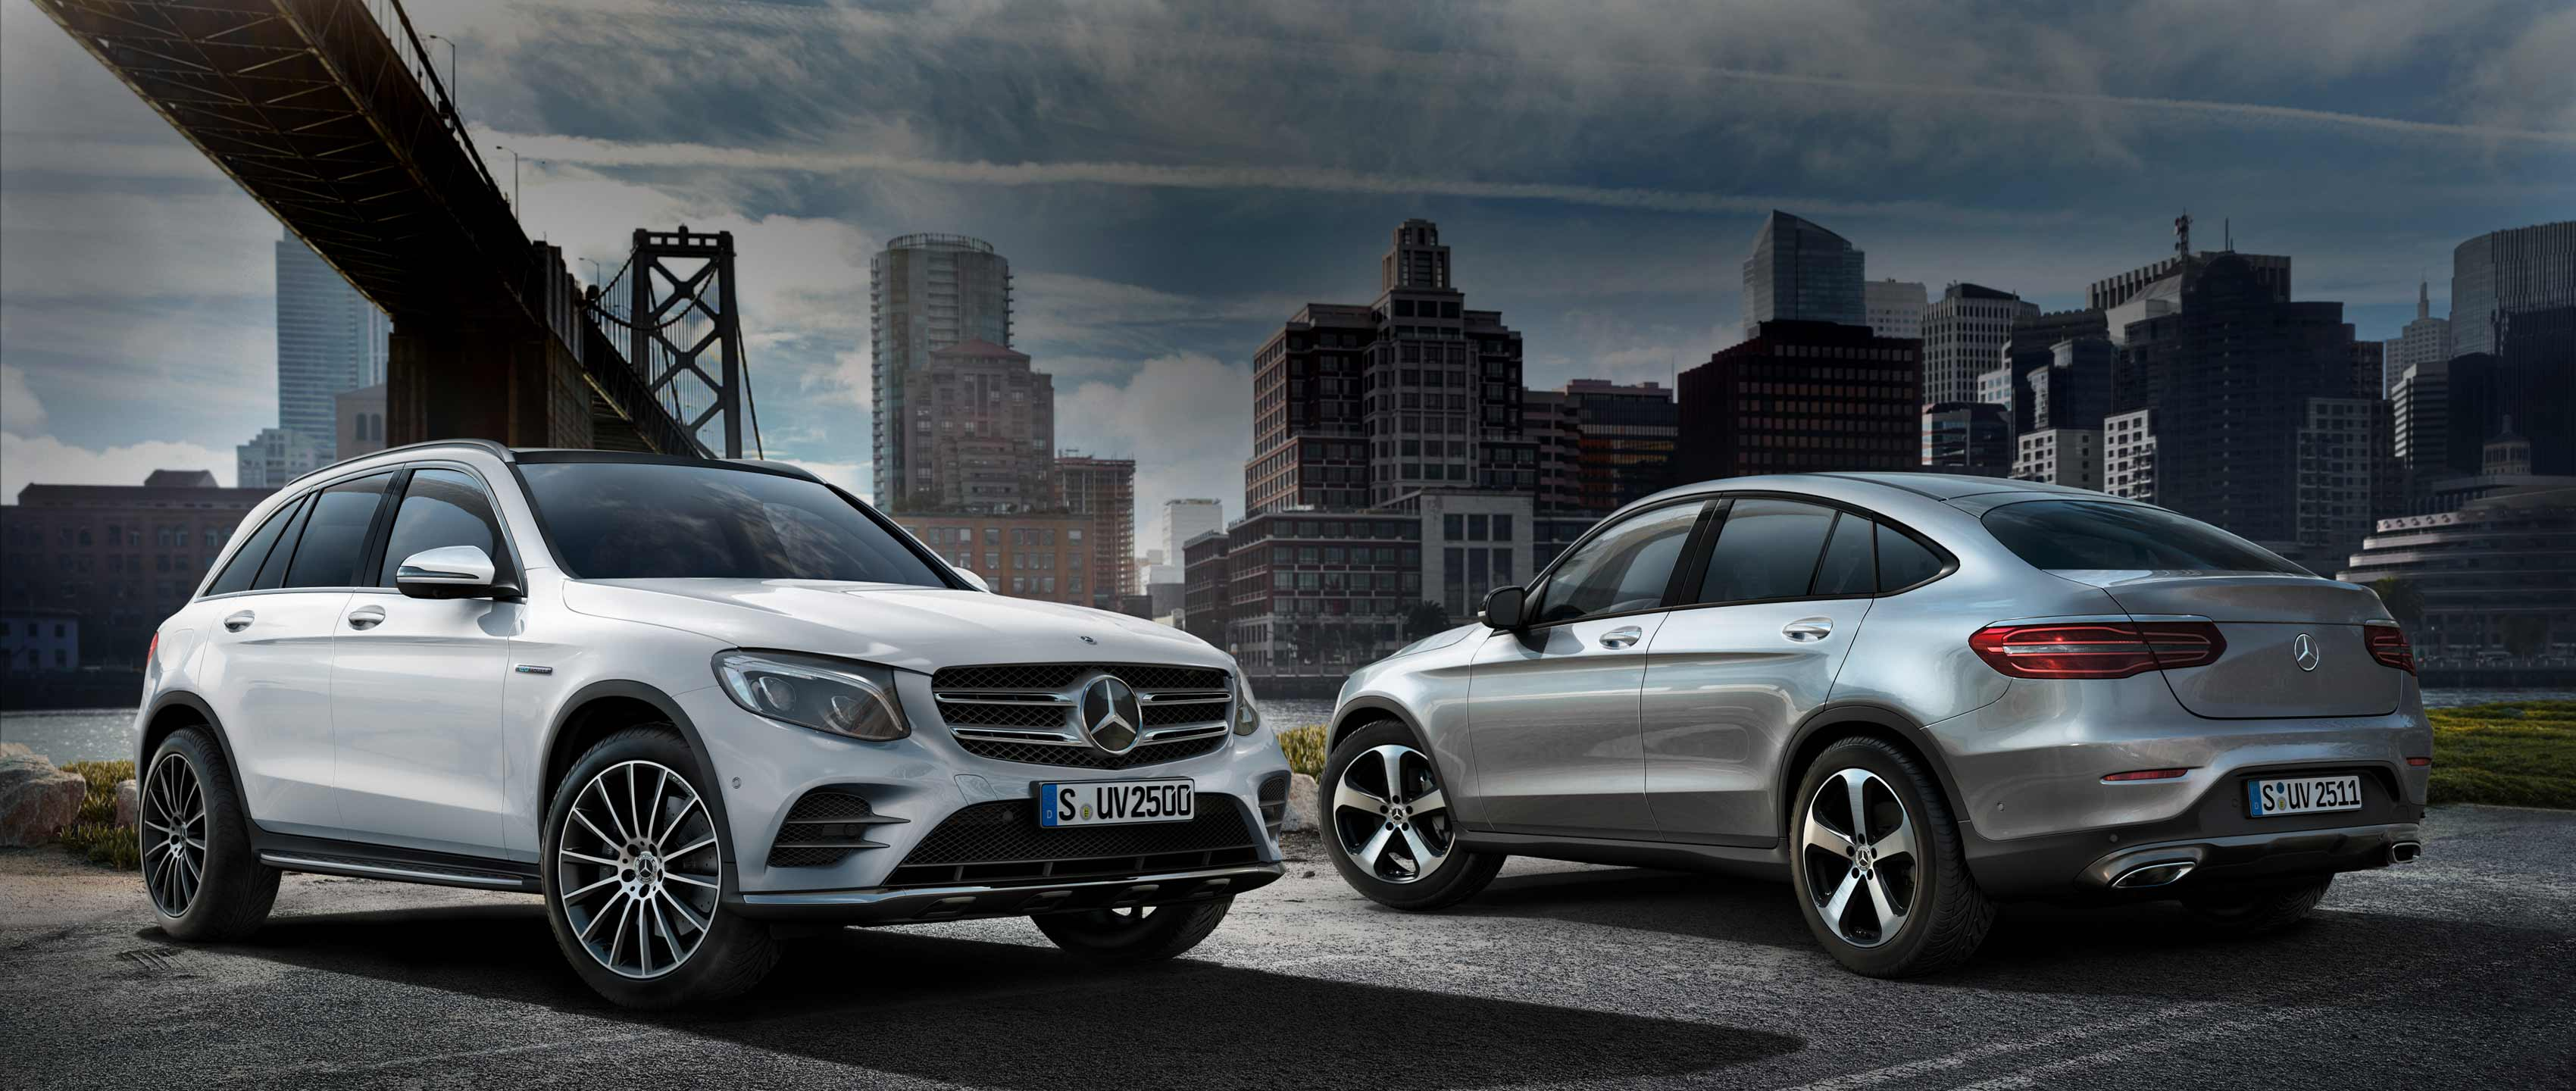 37 New Mercedes Glc Images